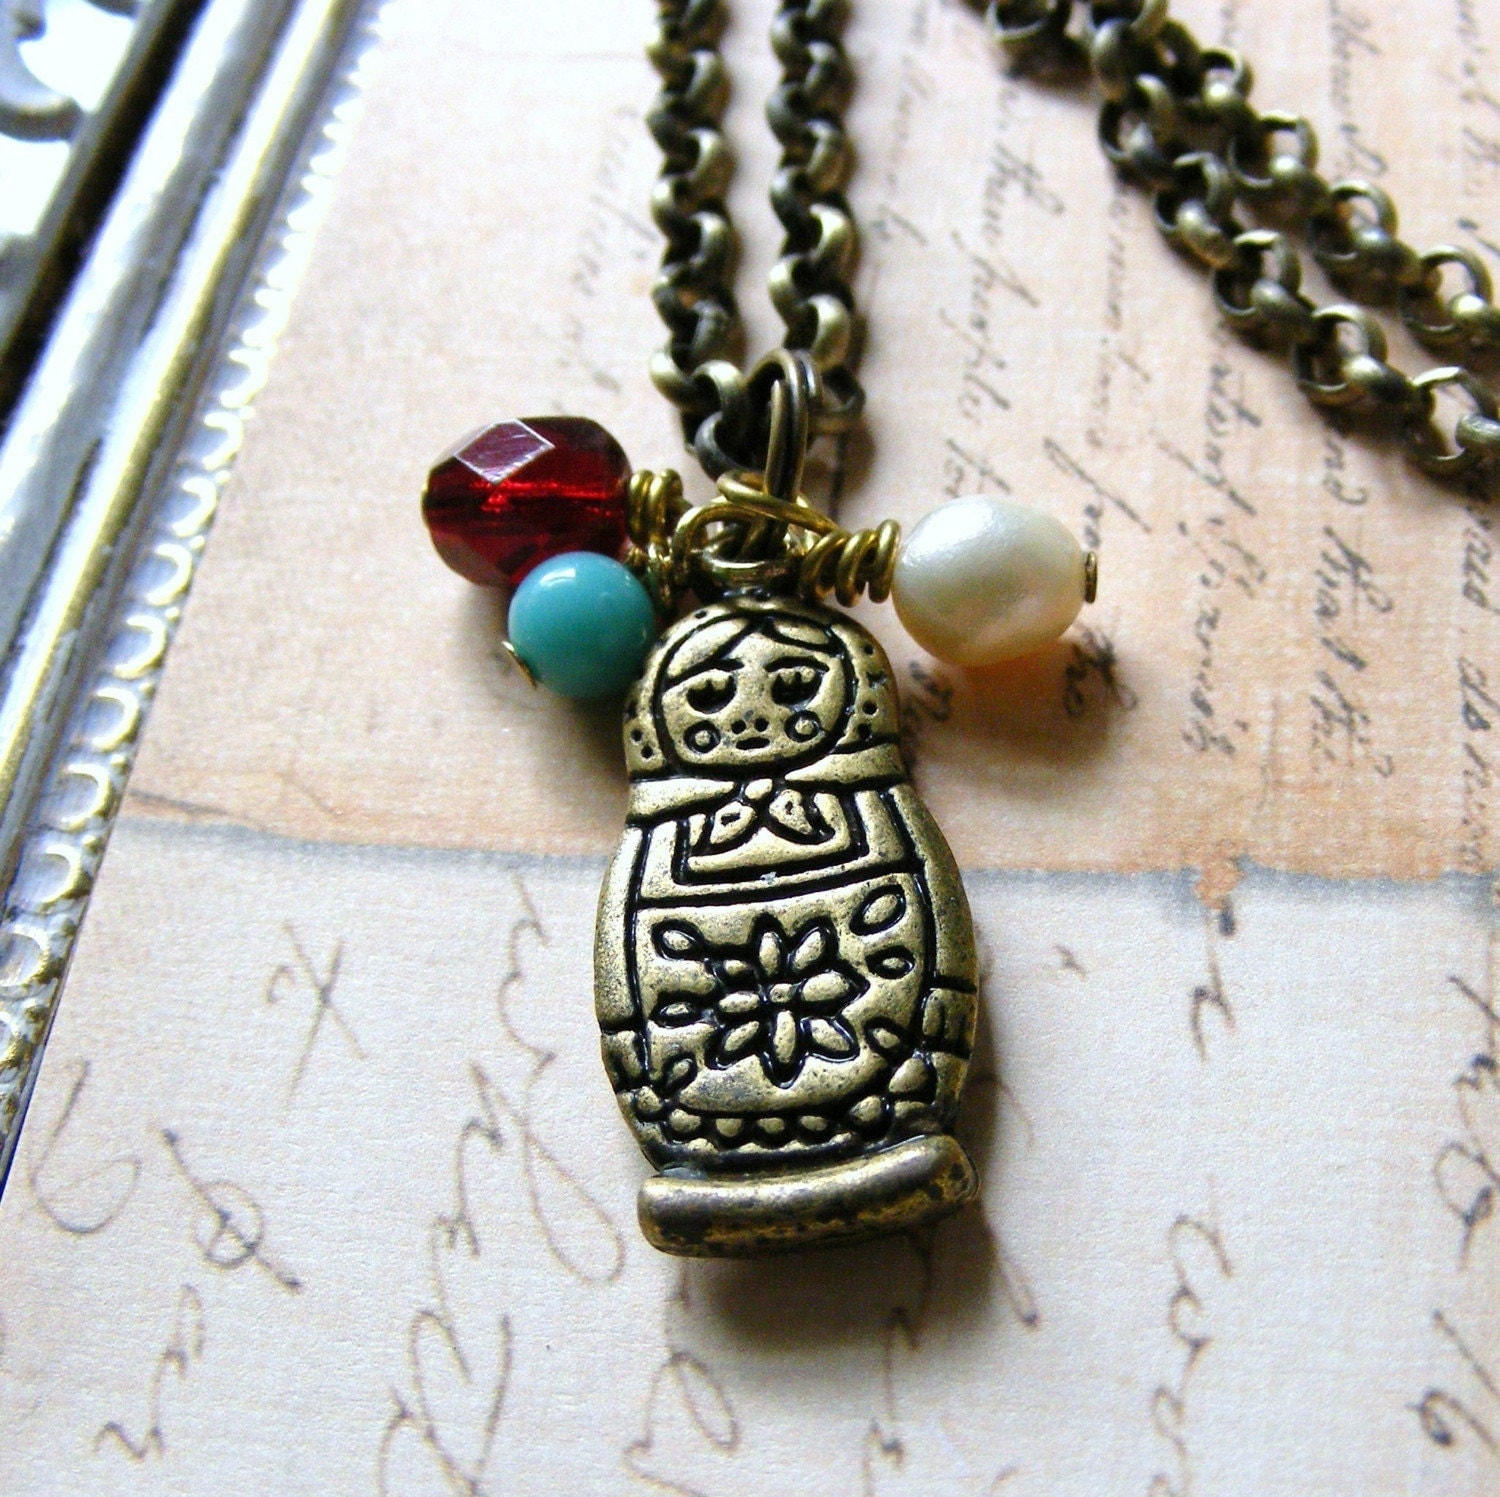 RUSSIAN DOLL matryoshka charm necklace by outoftheblue on Etsy